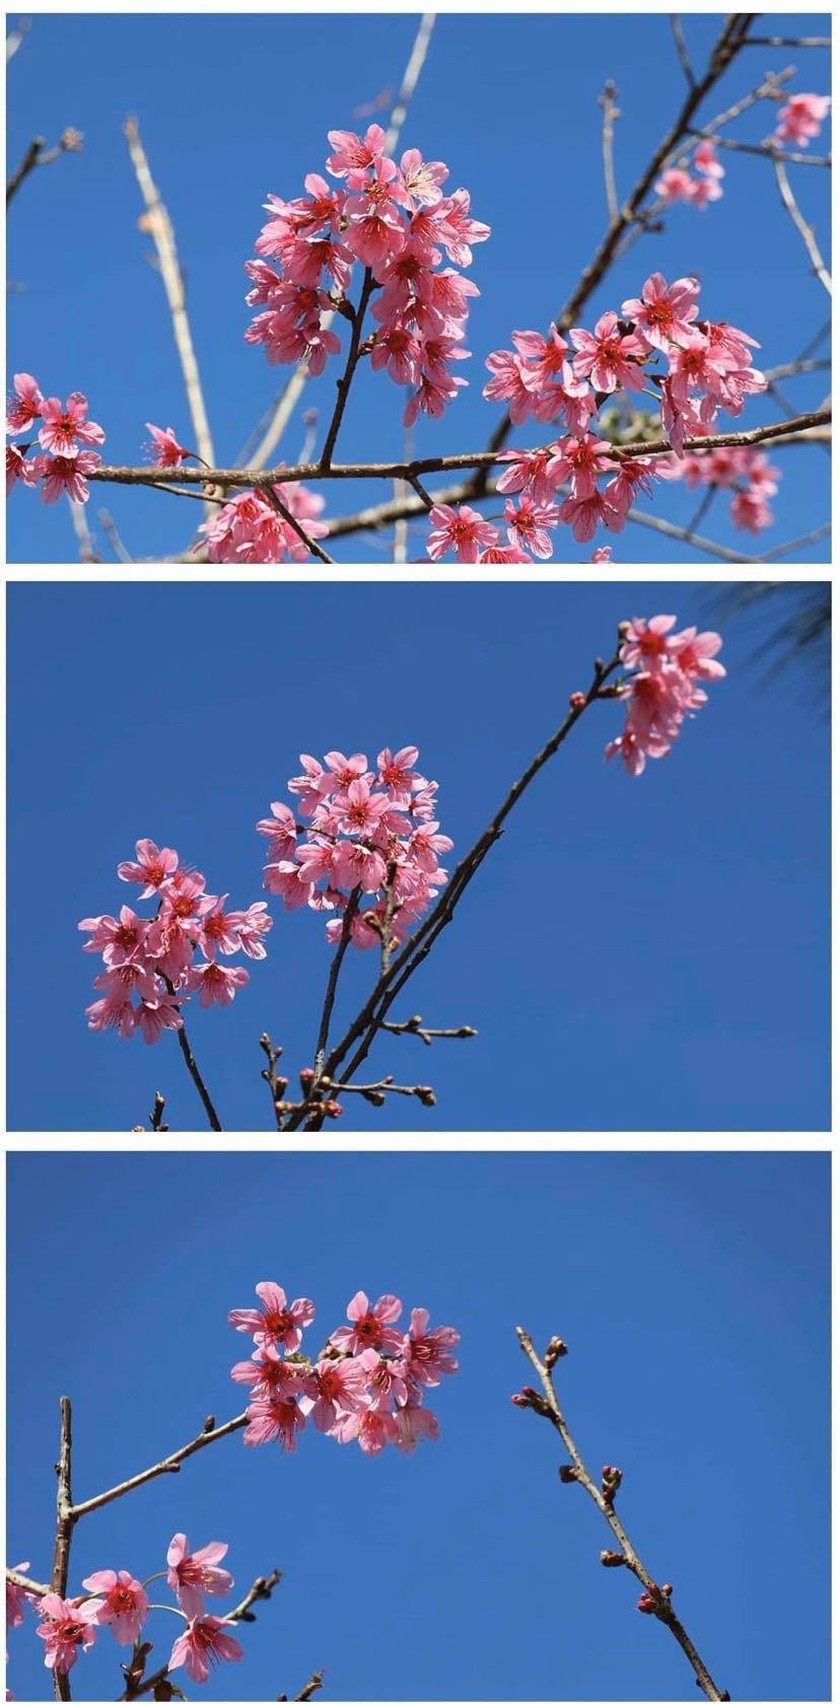 Da Lat turns a ravishing shade of pink with cherry blossoms in full bloom ảnh 3